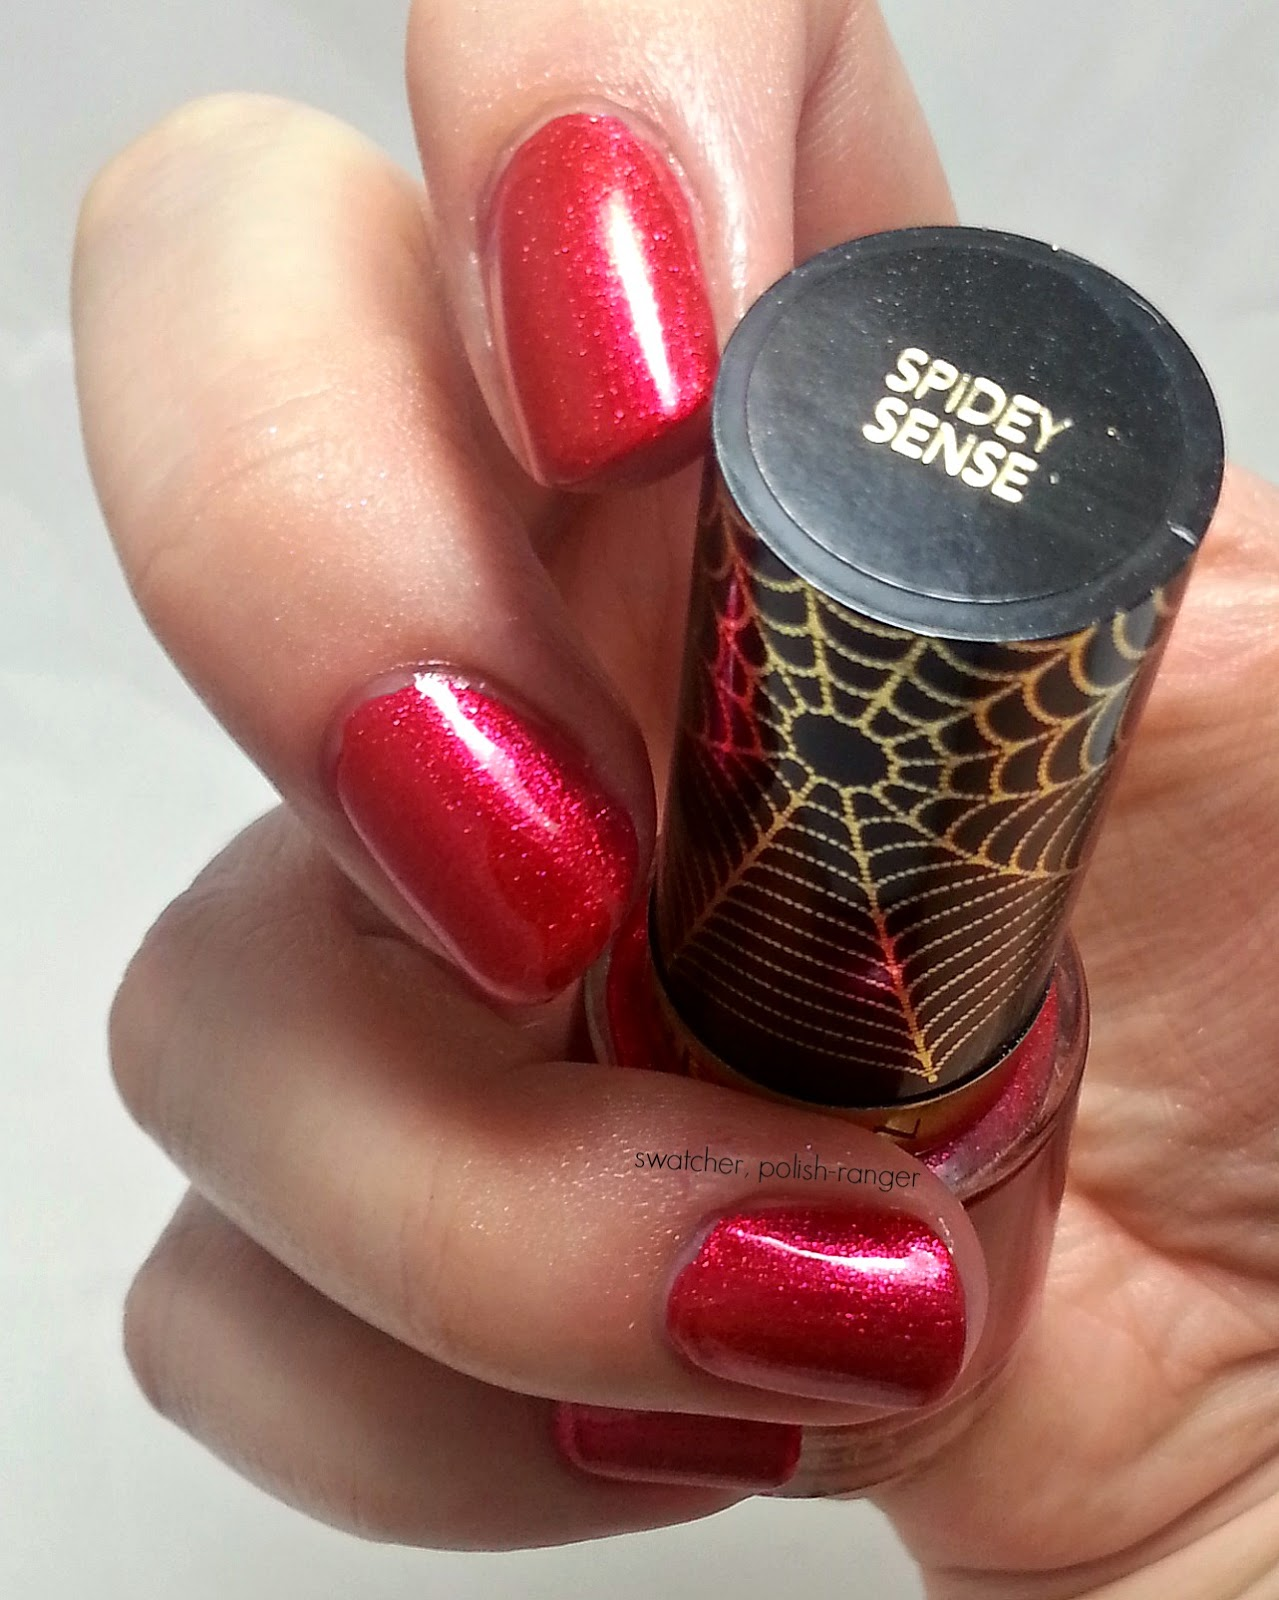 Revlon Electric Chrome Collection LE Spidey Sense swatch